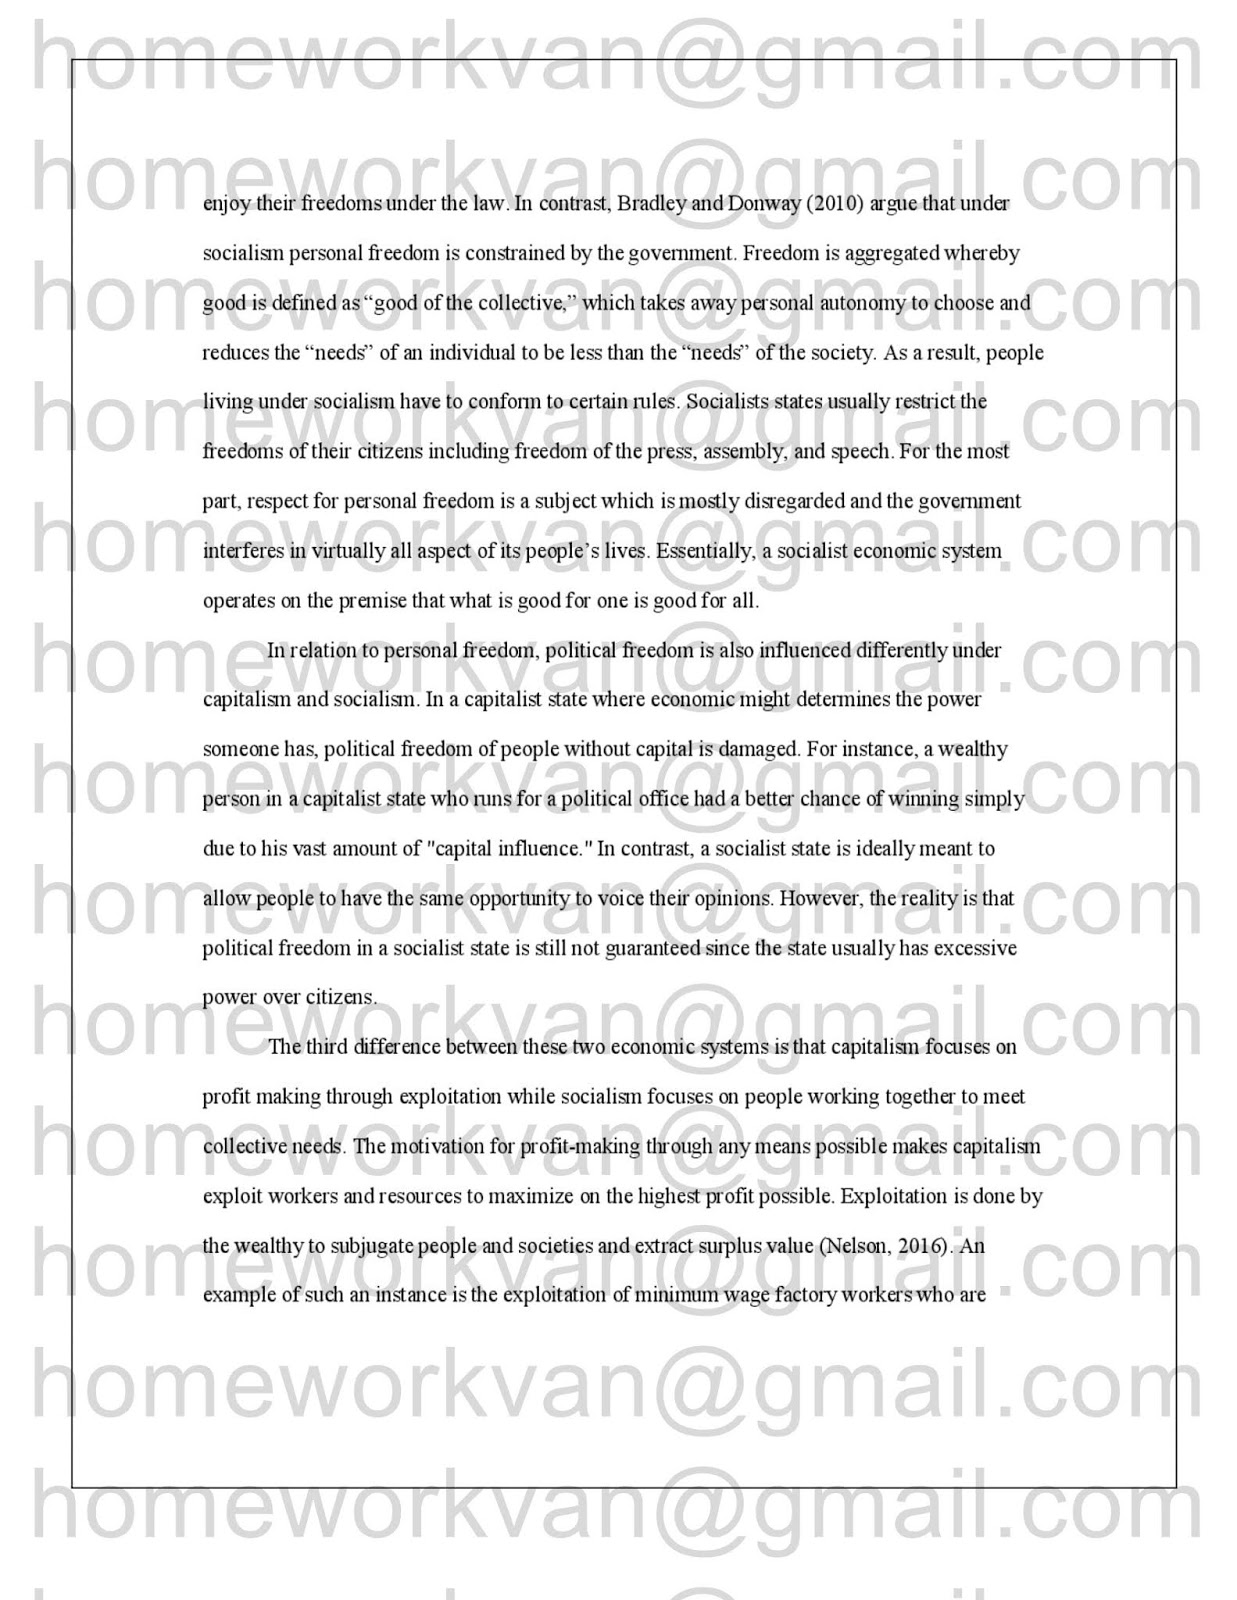 High School Reflective Essay Examples The Following Is Plagiarism Report For Compare And Contrast Essay A  Comparison Of Capitalism And Socialism Economic Systems Essay  By  Homeworkvan English Essays Book also Sample Of Research Essay Paper Homeworkvan Official Blog Compare And Contrast Essay A Comparison  Pmr English Essay